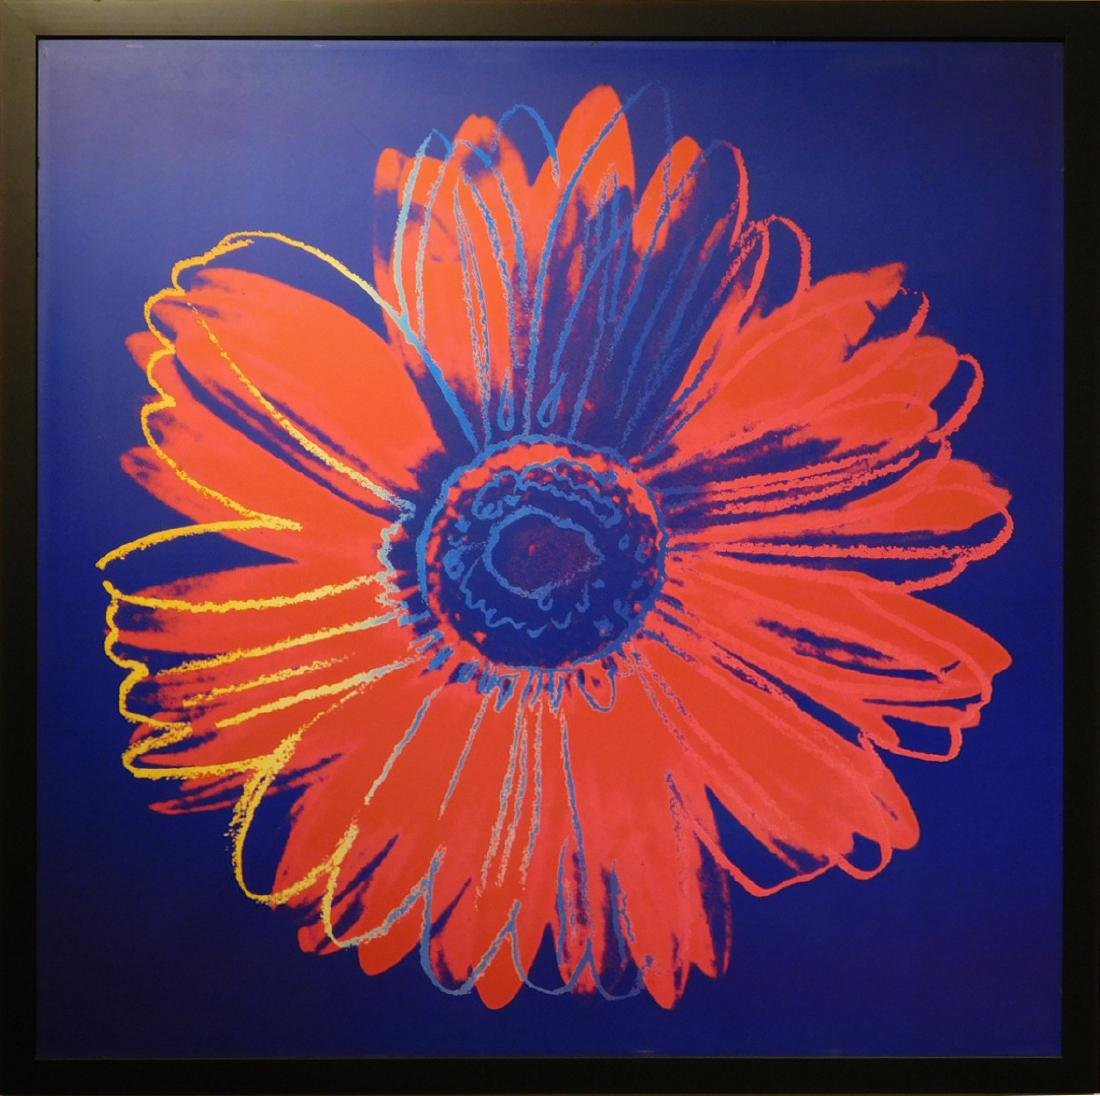 Andy Warhol: Daisy Series, Blue and Pink